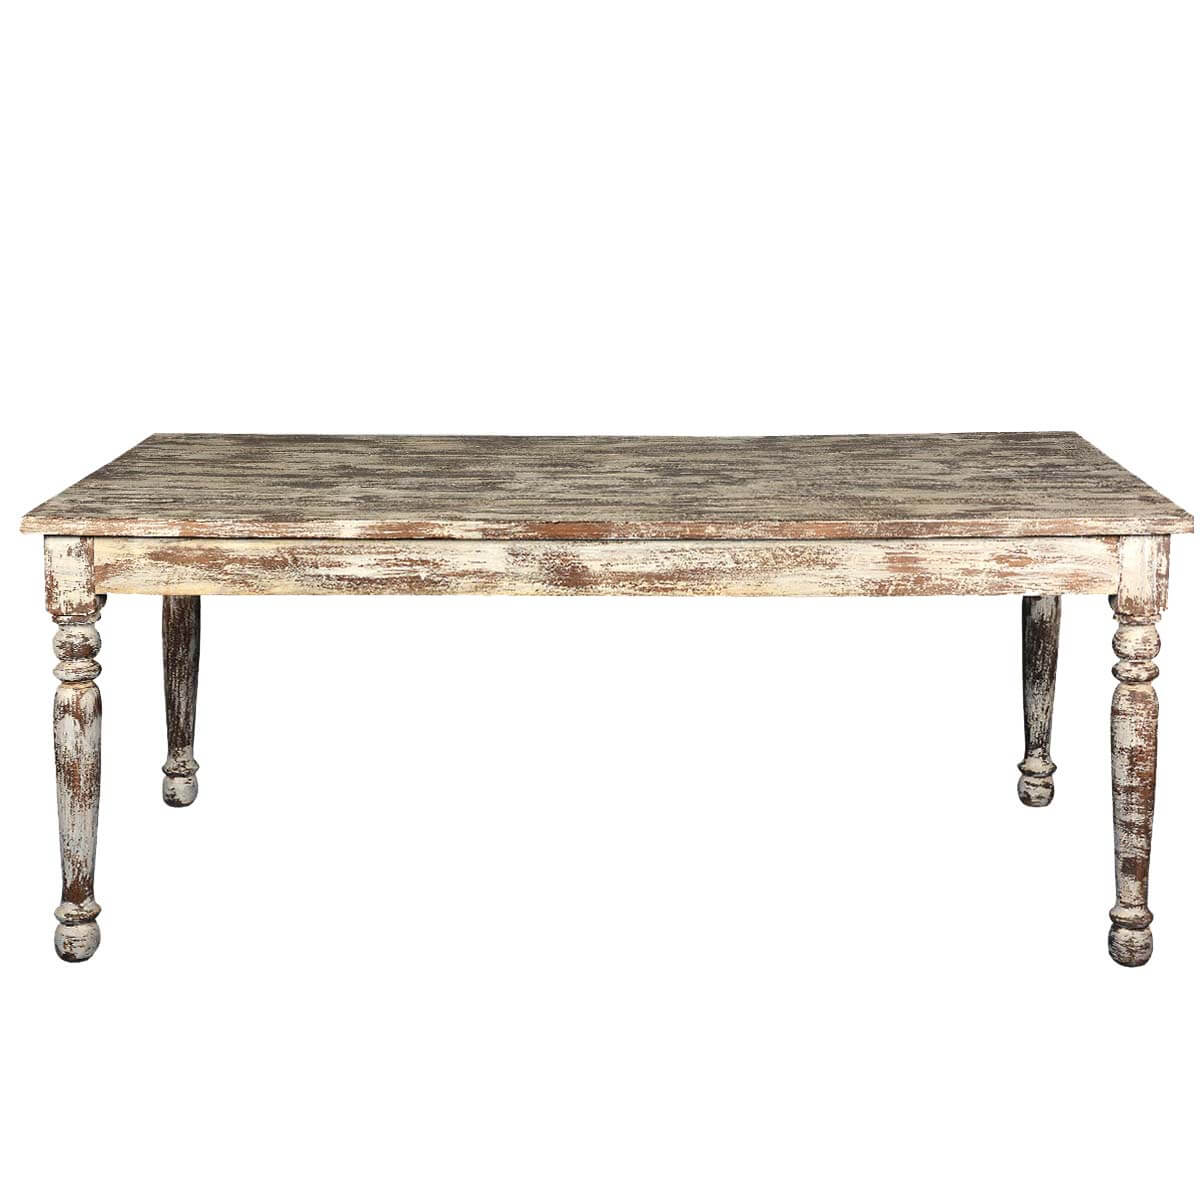 Distressed white finish mango wood farmhouse dining table Farm dining table